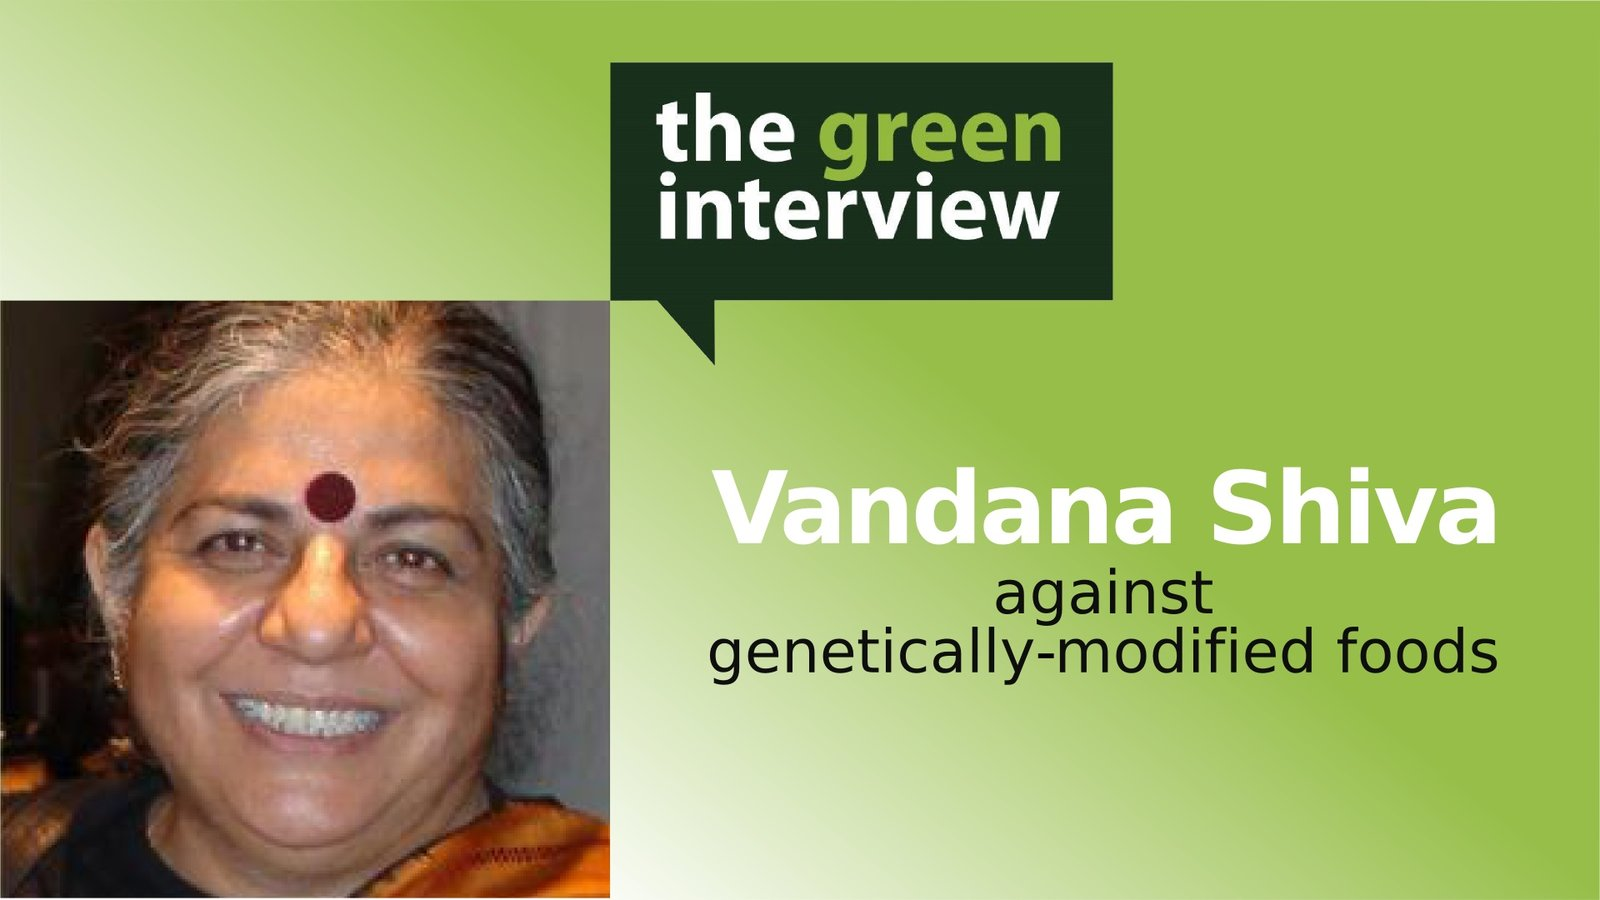 Vandana Shiva: Against Genetically-Modified Foods